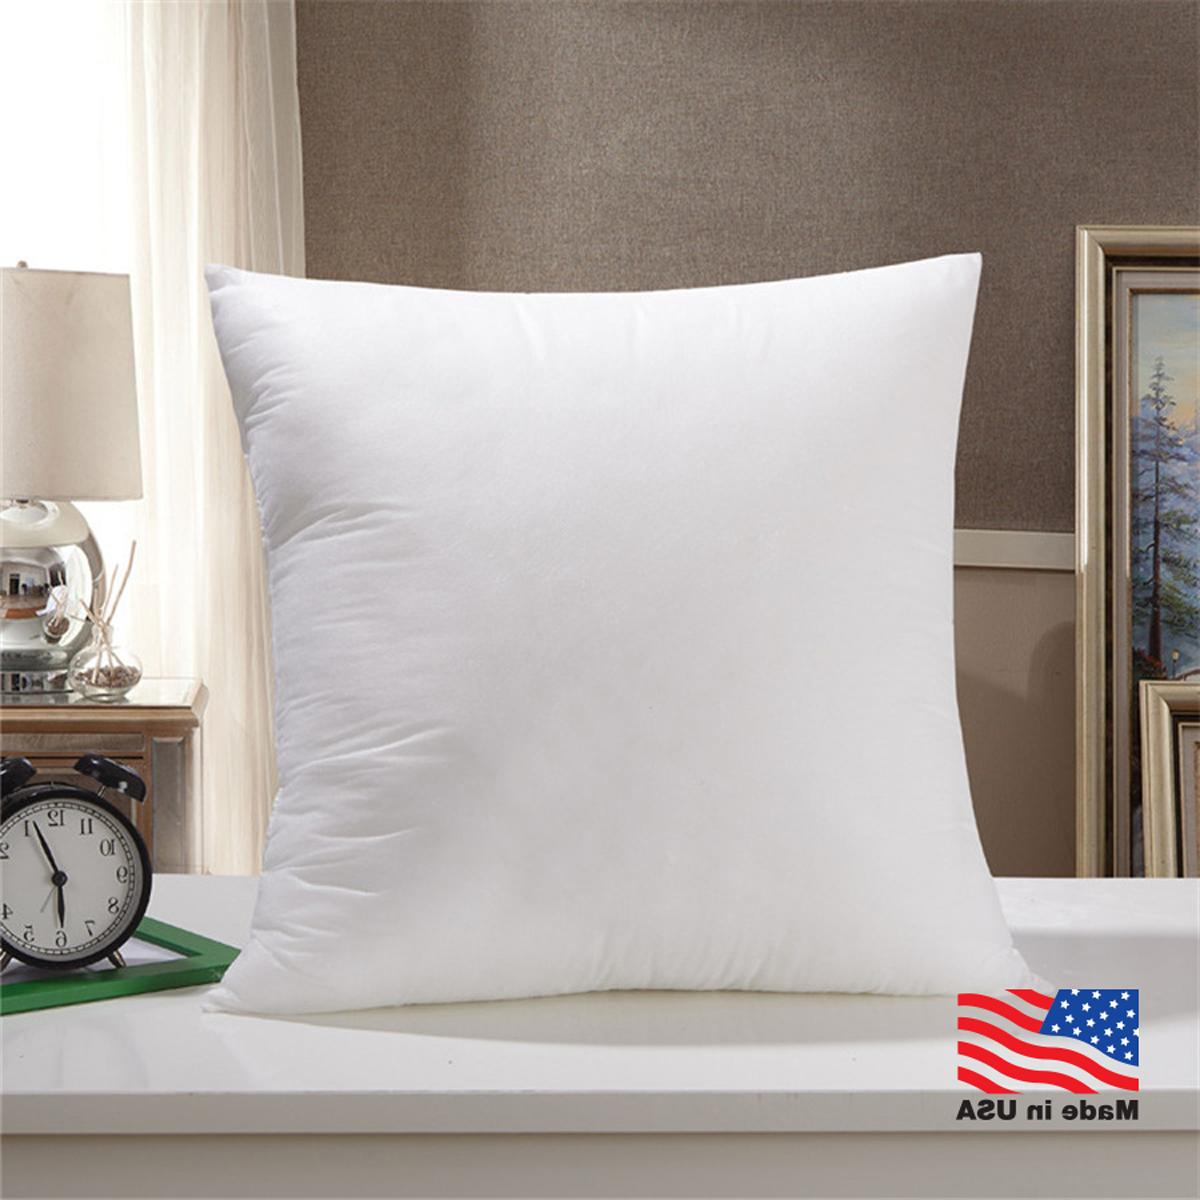 Throw Pillow Insert Form Inserts Euro Square Pillows Hypoall